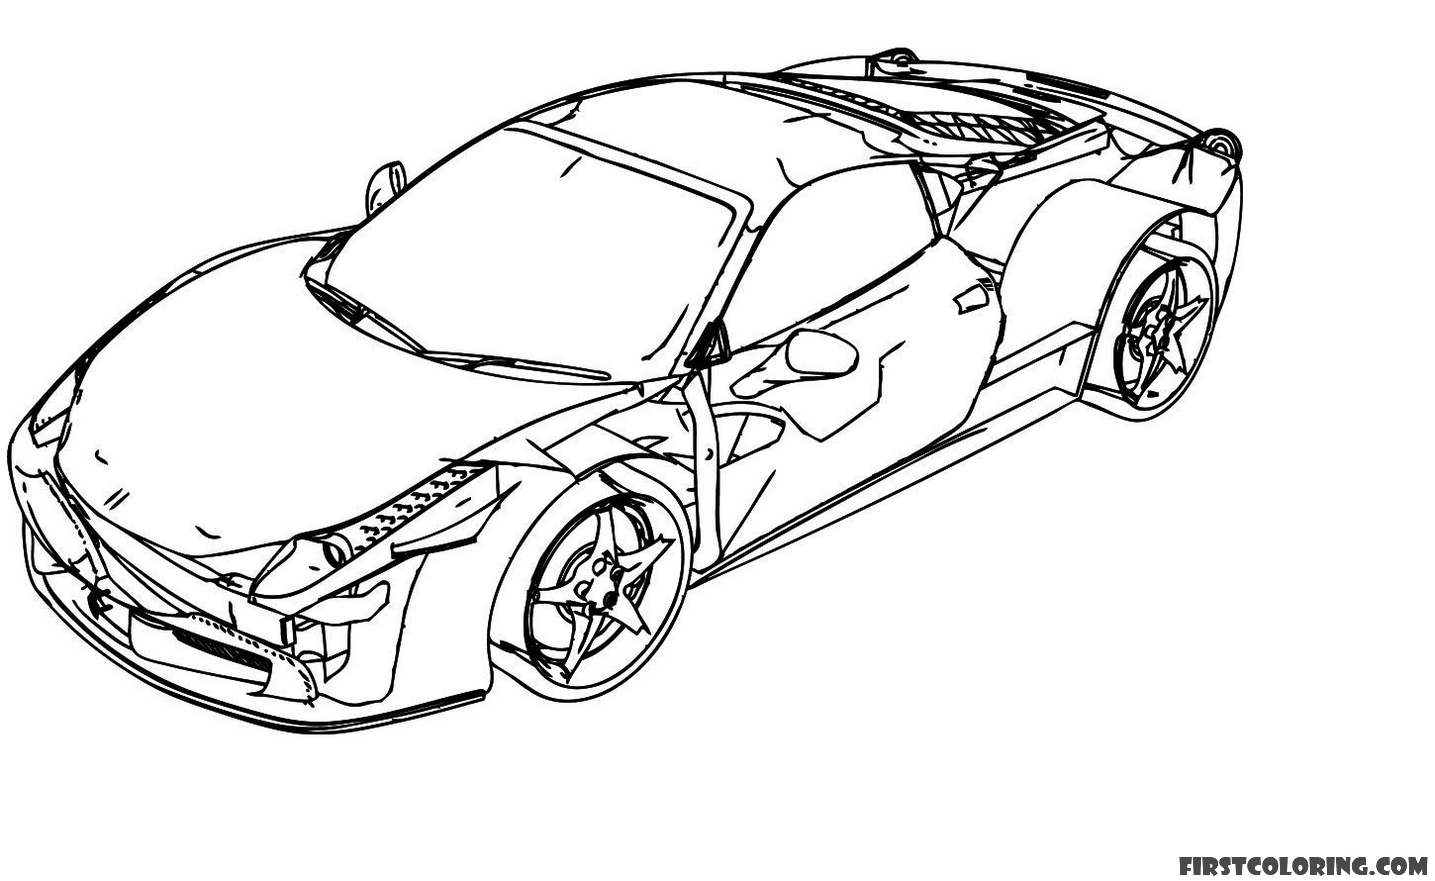 coloring pages of ferrari cars coloring page ferrari laferrari f150 letmecolorcom pages coloring of ferrari